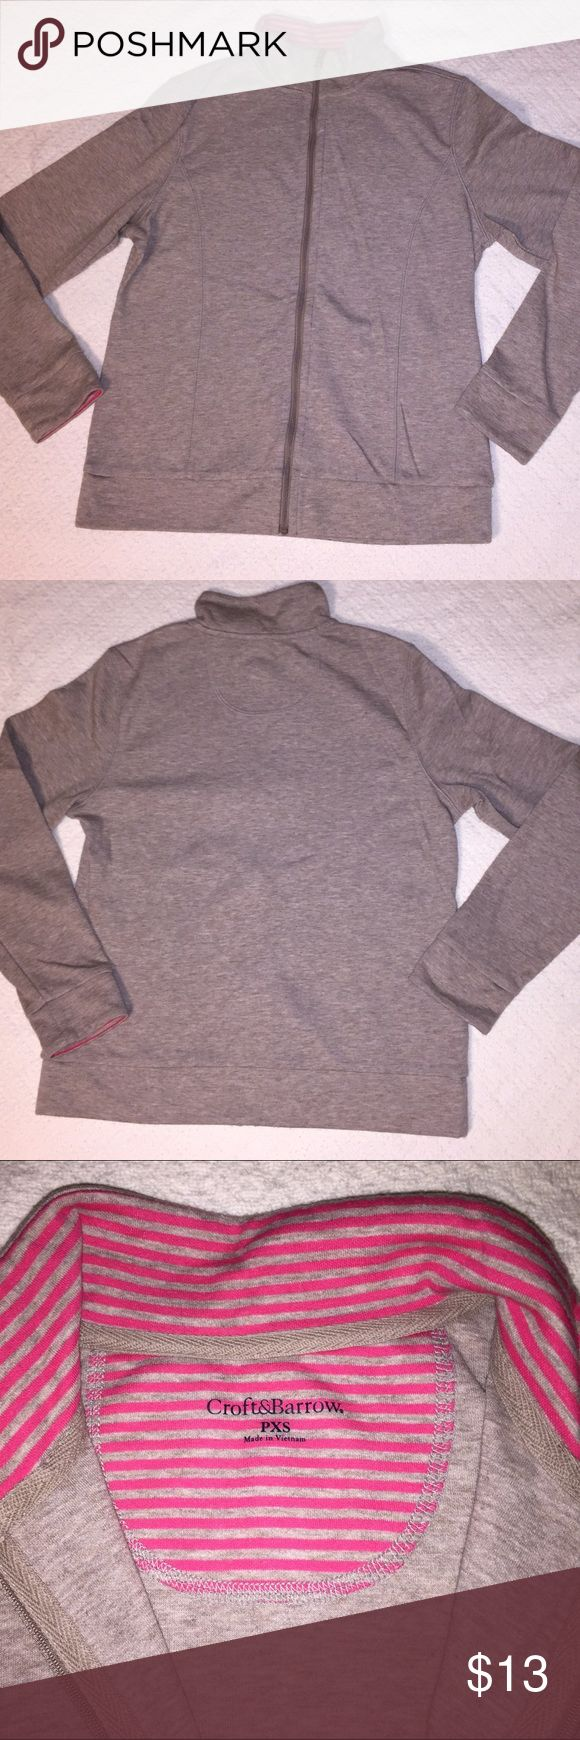 Womens Petite XS oatmeal heather zip up jacket Womens Petite XS oatmeal heather with hot pink striped collar and inside sleeves. Full zip up sweater jacket. Loose fit for XS. Can also fit size small. Very soft and comfortable. Excellent condition. Only worn once. croft & barrow Jackets & Coats